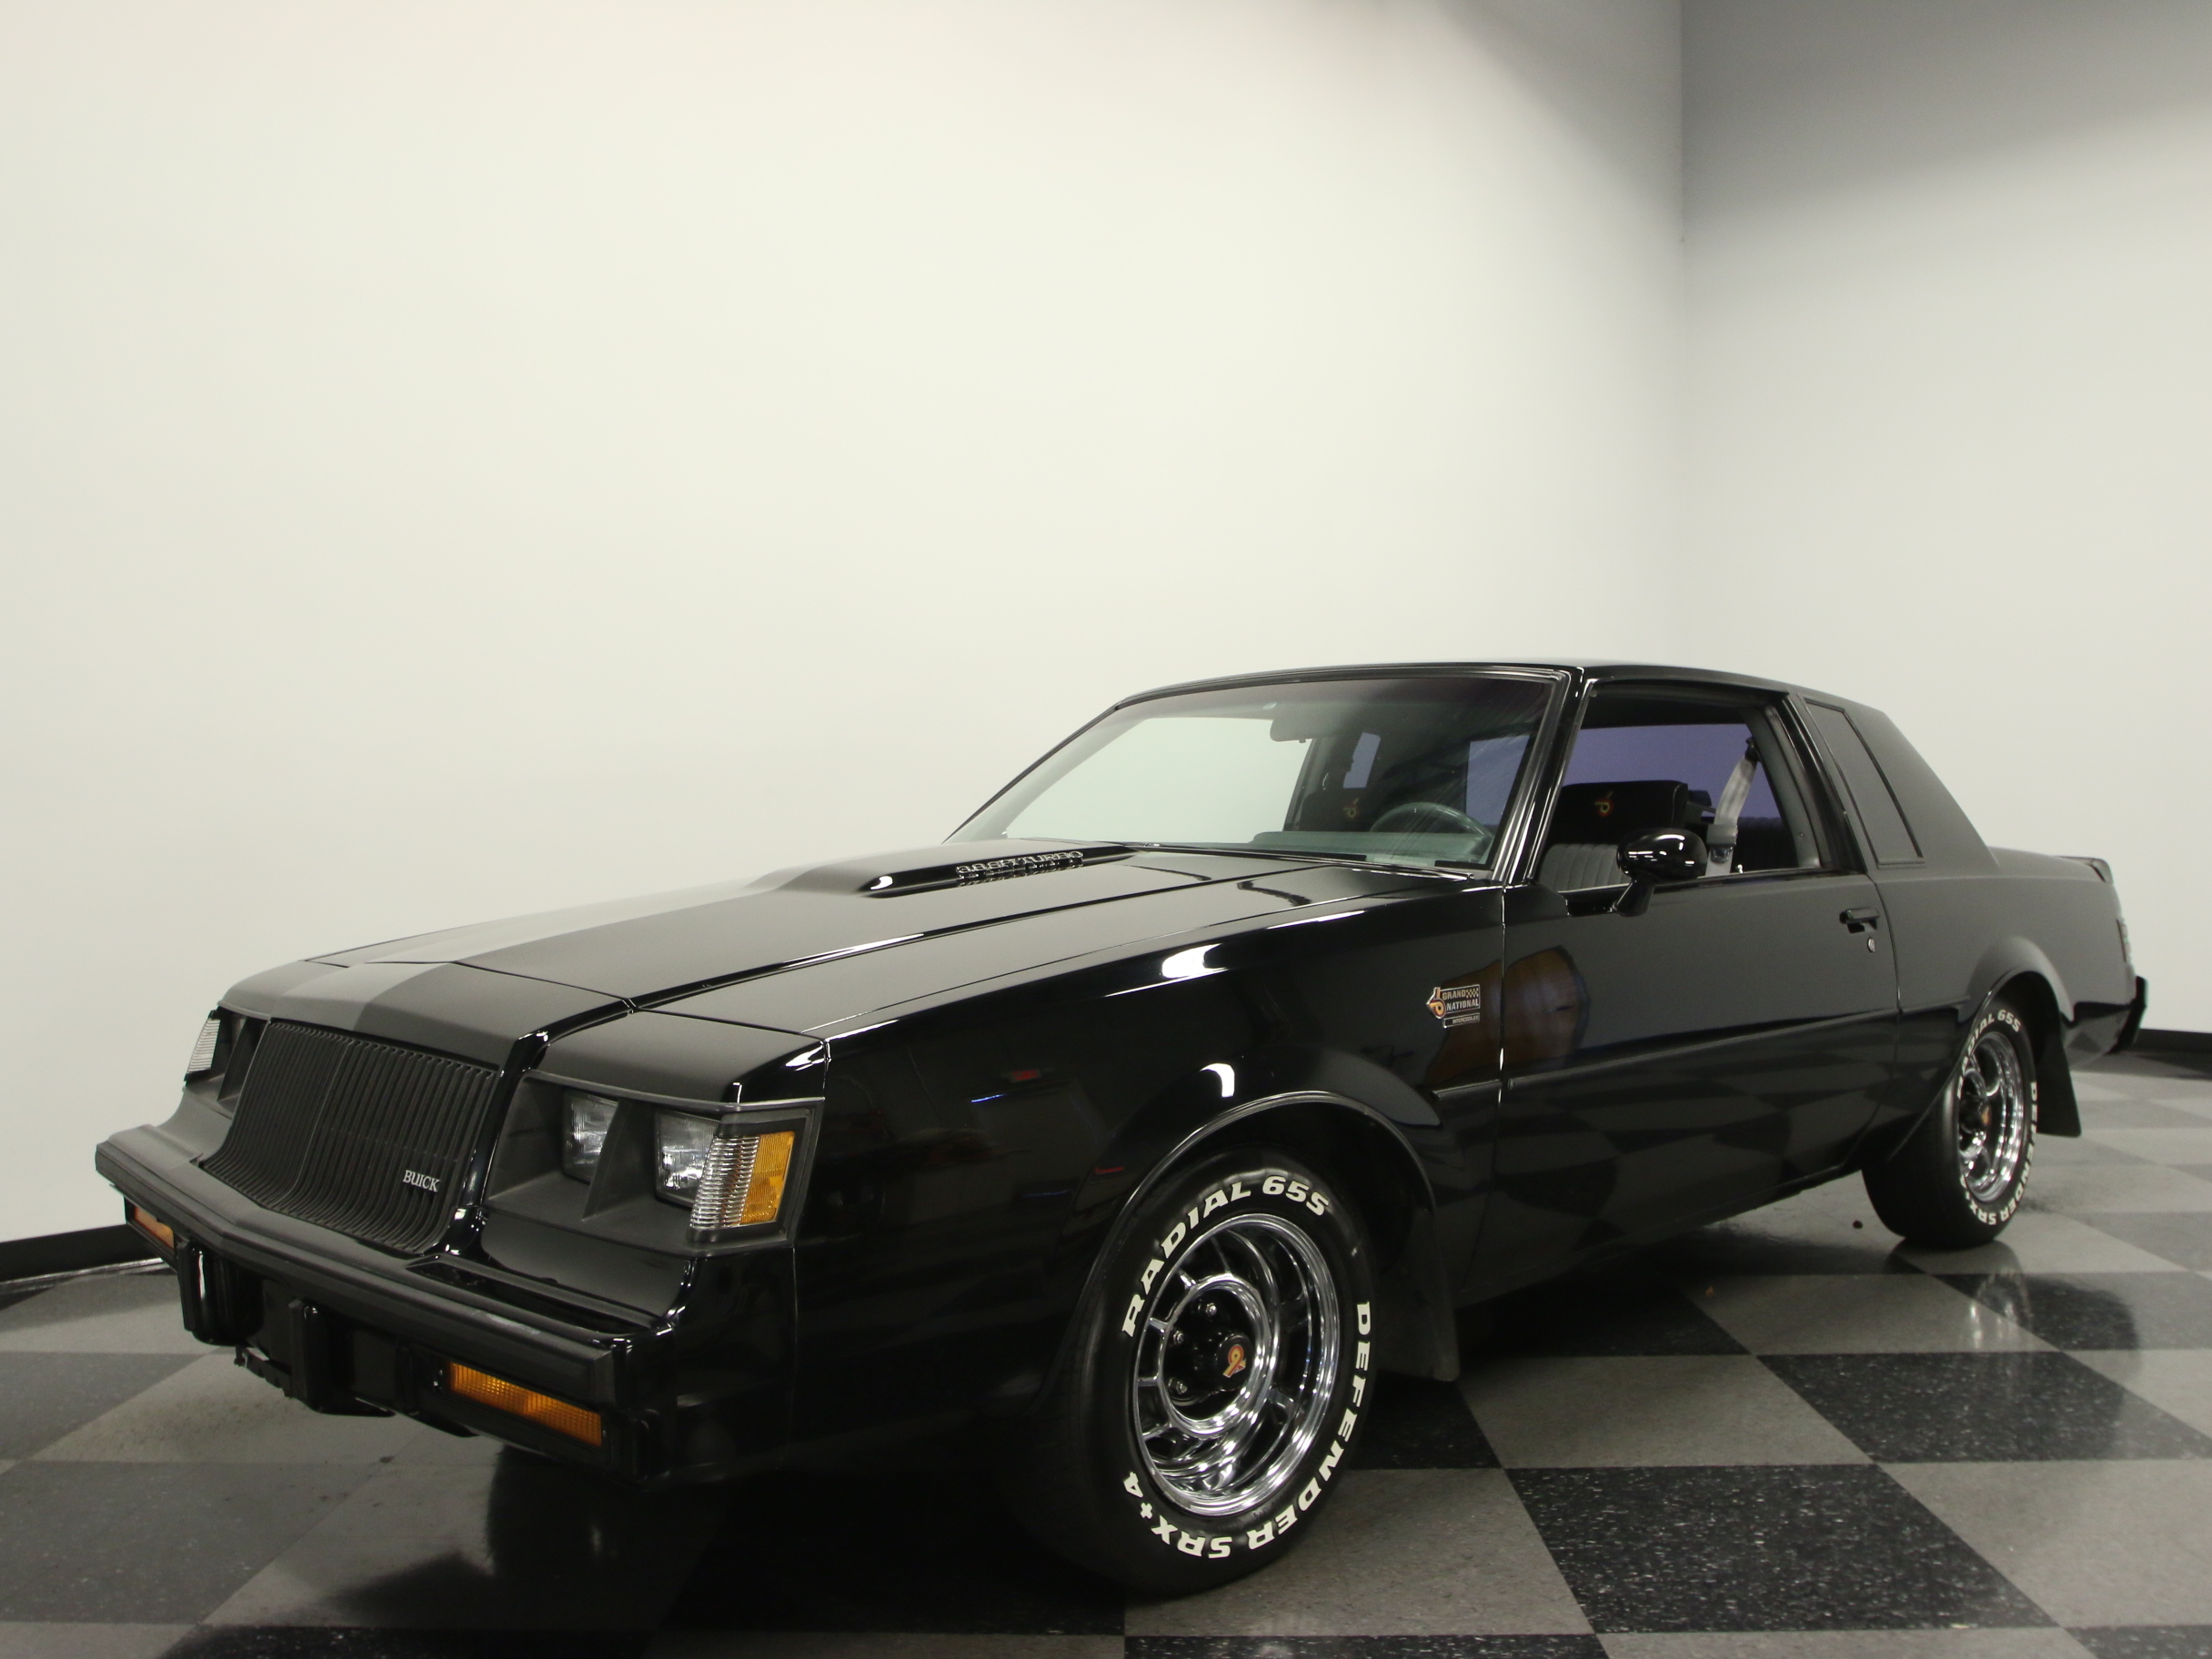 1987 buick grand national base coupe 2 door ebay - 1987 buick grand national interior ...